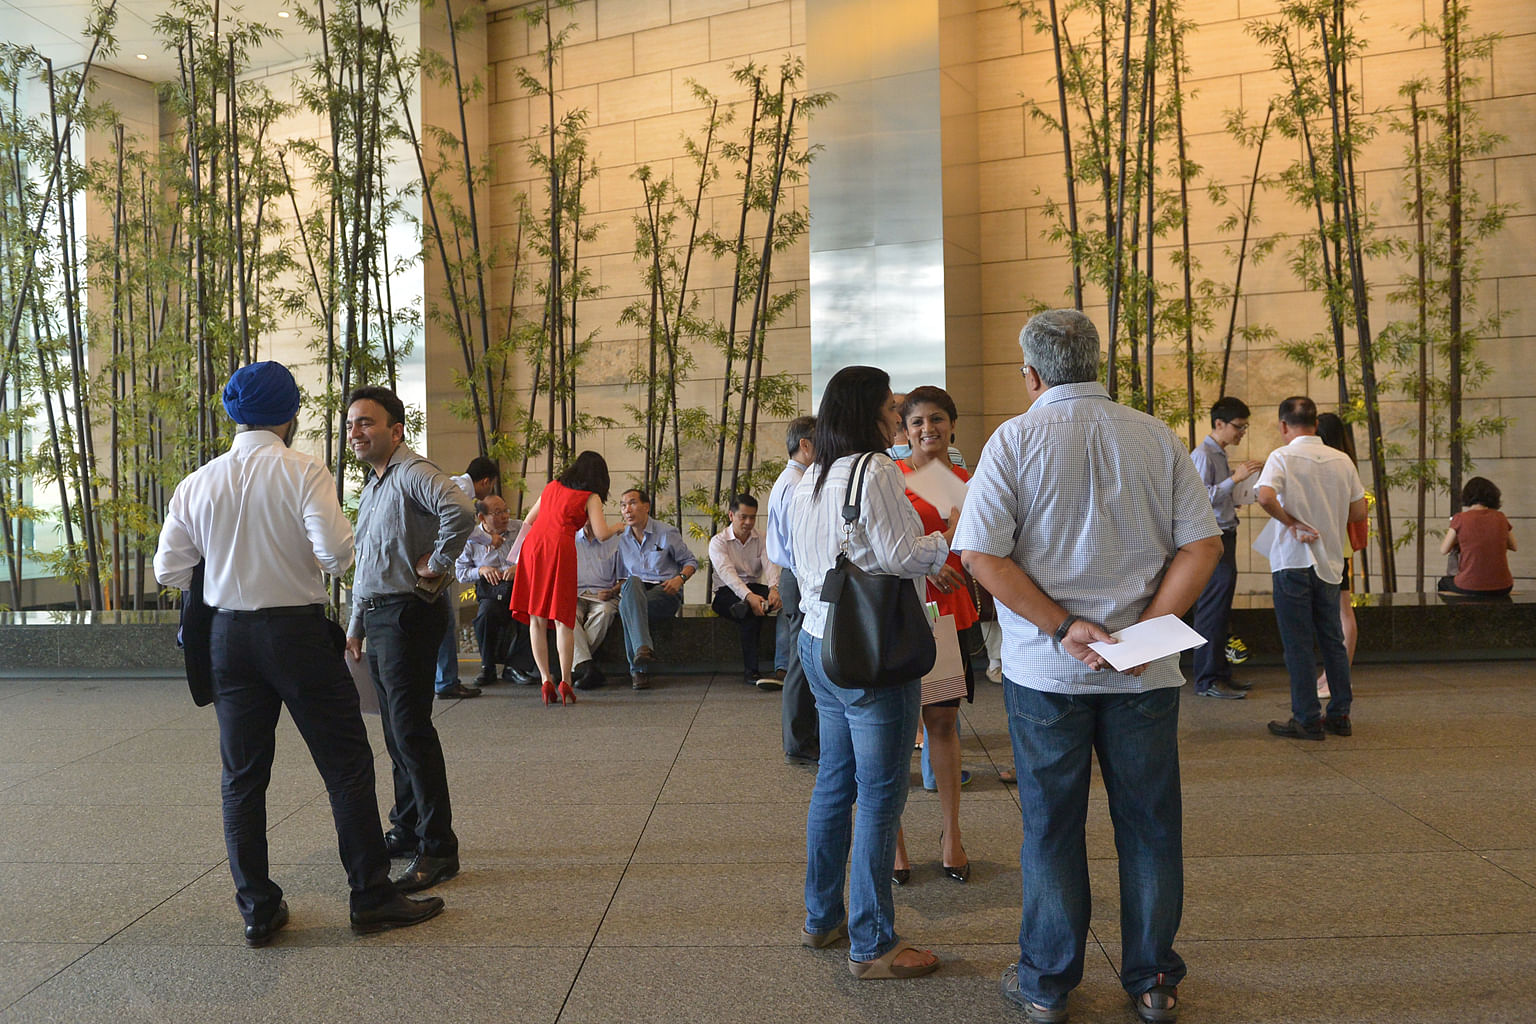 Some Rickmers bondholders were at One Raffles Quay last Wednesday to file an acceleration notice with the trustee to seek immediate redemption of their notes.